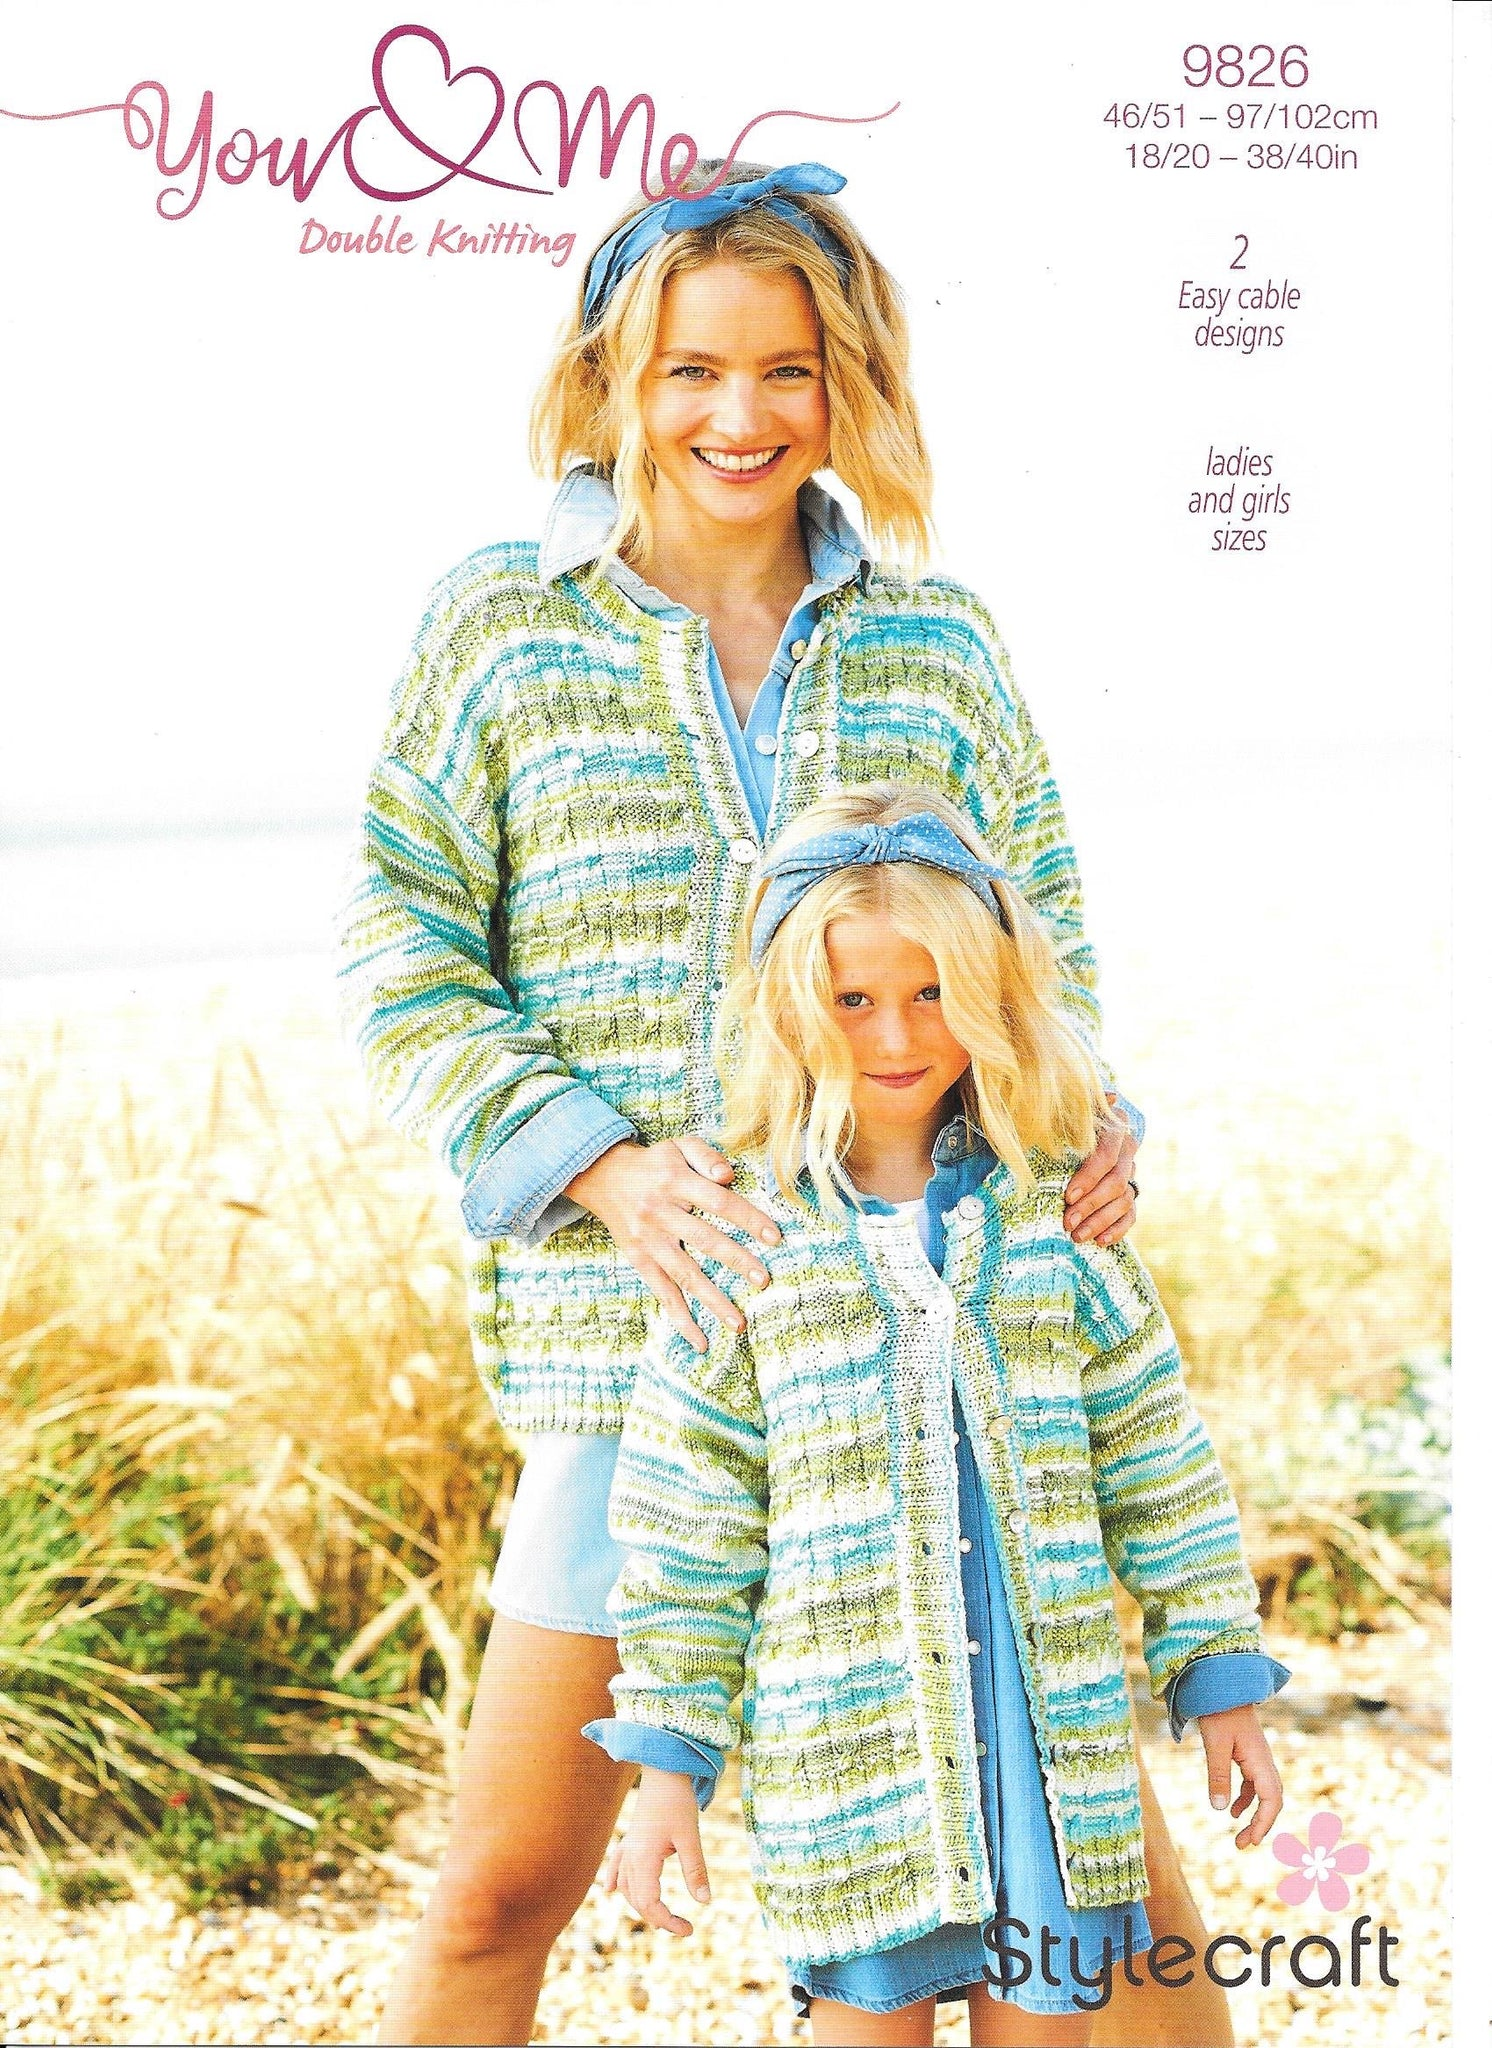 9826 Stylecraft You & Me dk lady and girl cardigan and sweater knitting pattern